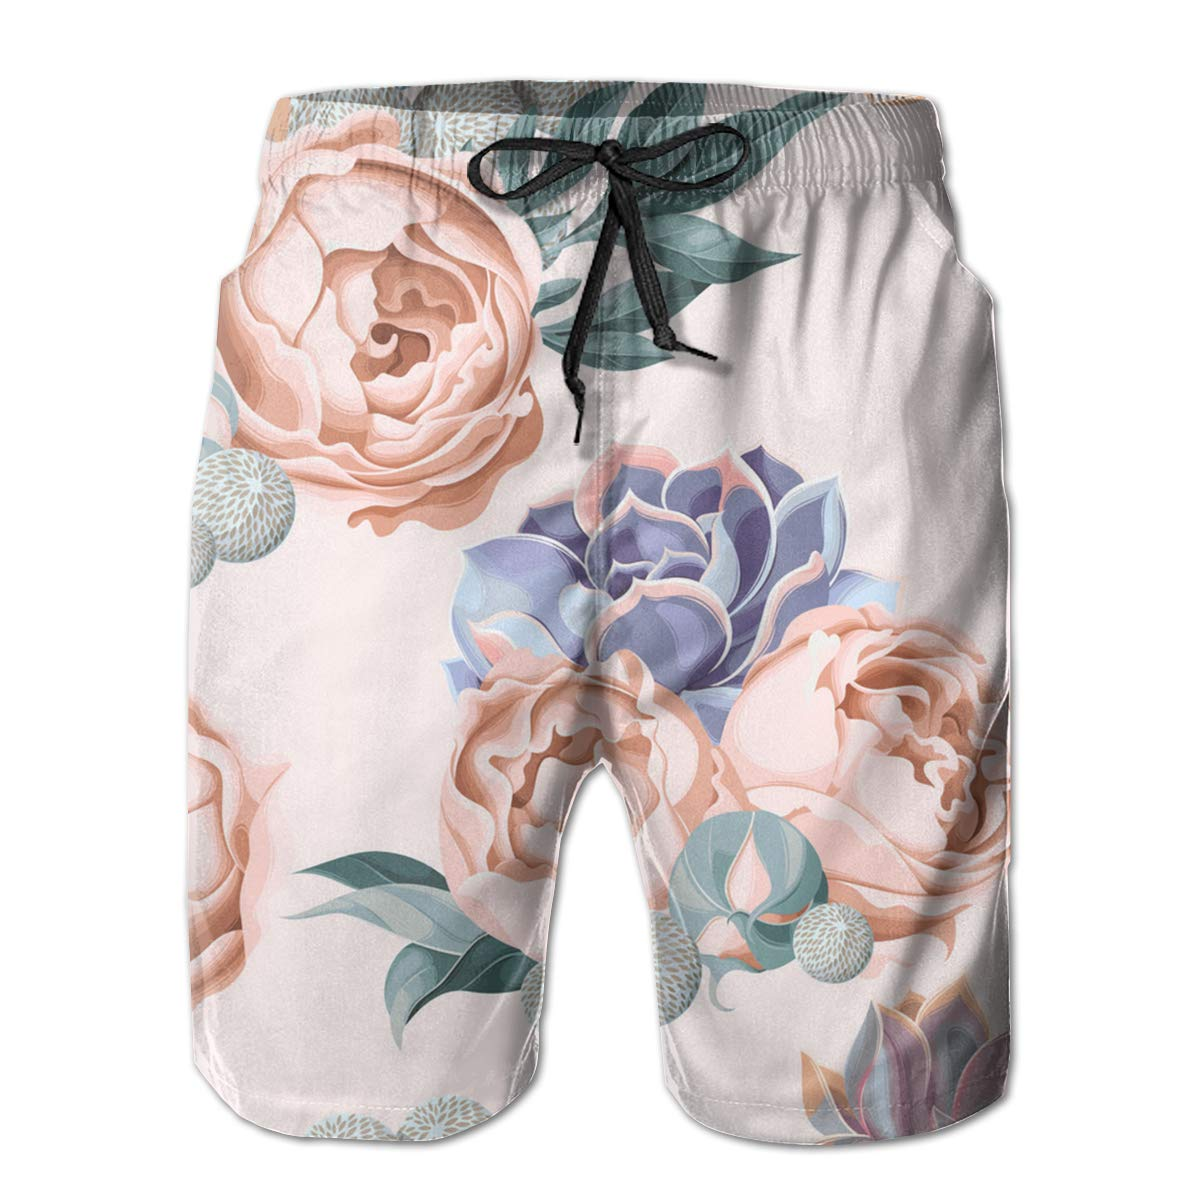 SARA NELL Mens Swim Trunks Succulent and Peony Roses Surfing Beach Board Shorts Swimwear